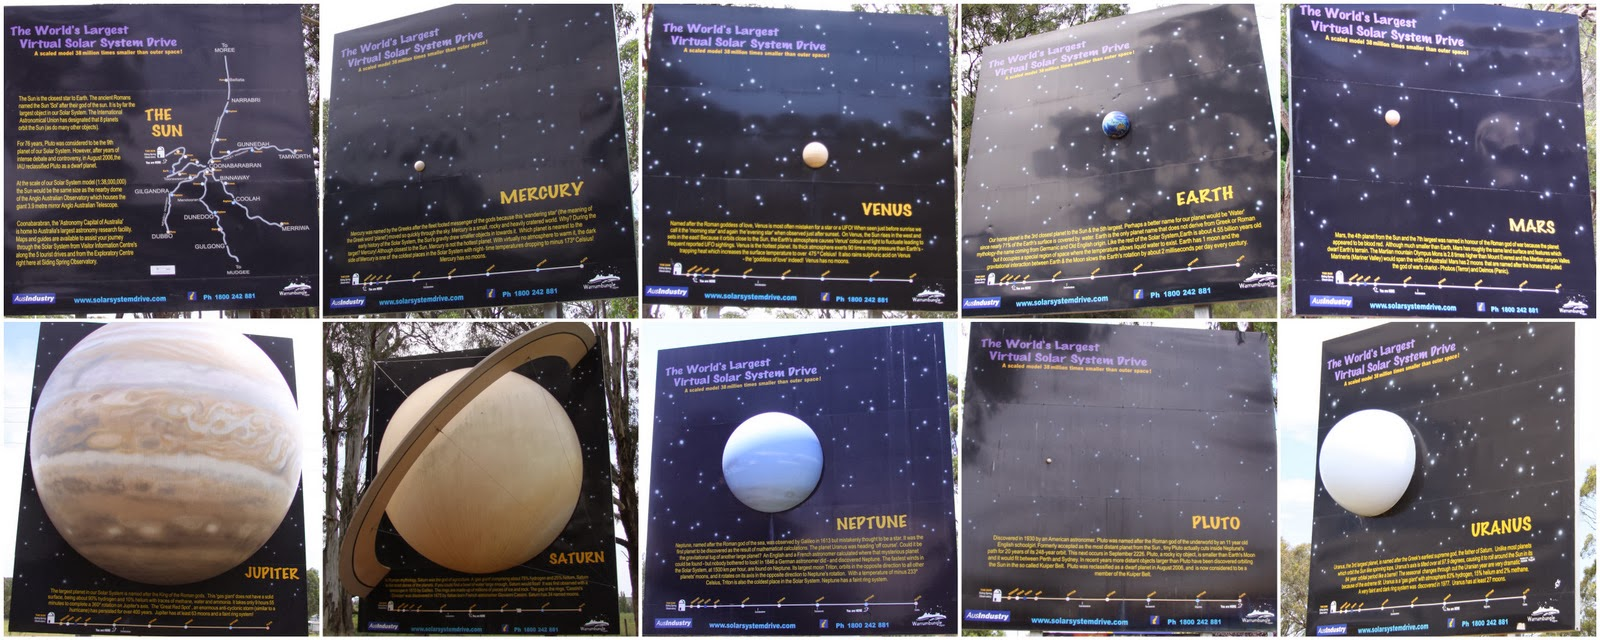 Sliding Springs Solar System Drive Planets Sewing